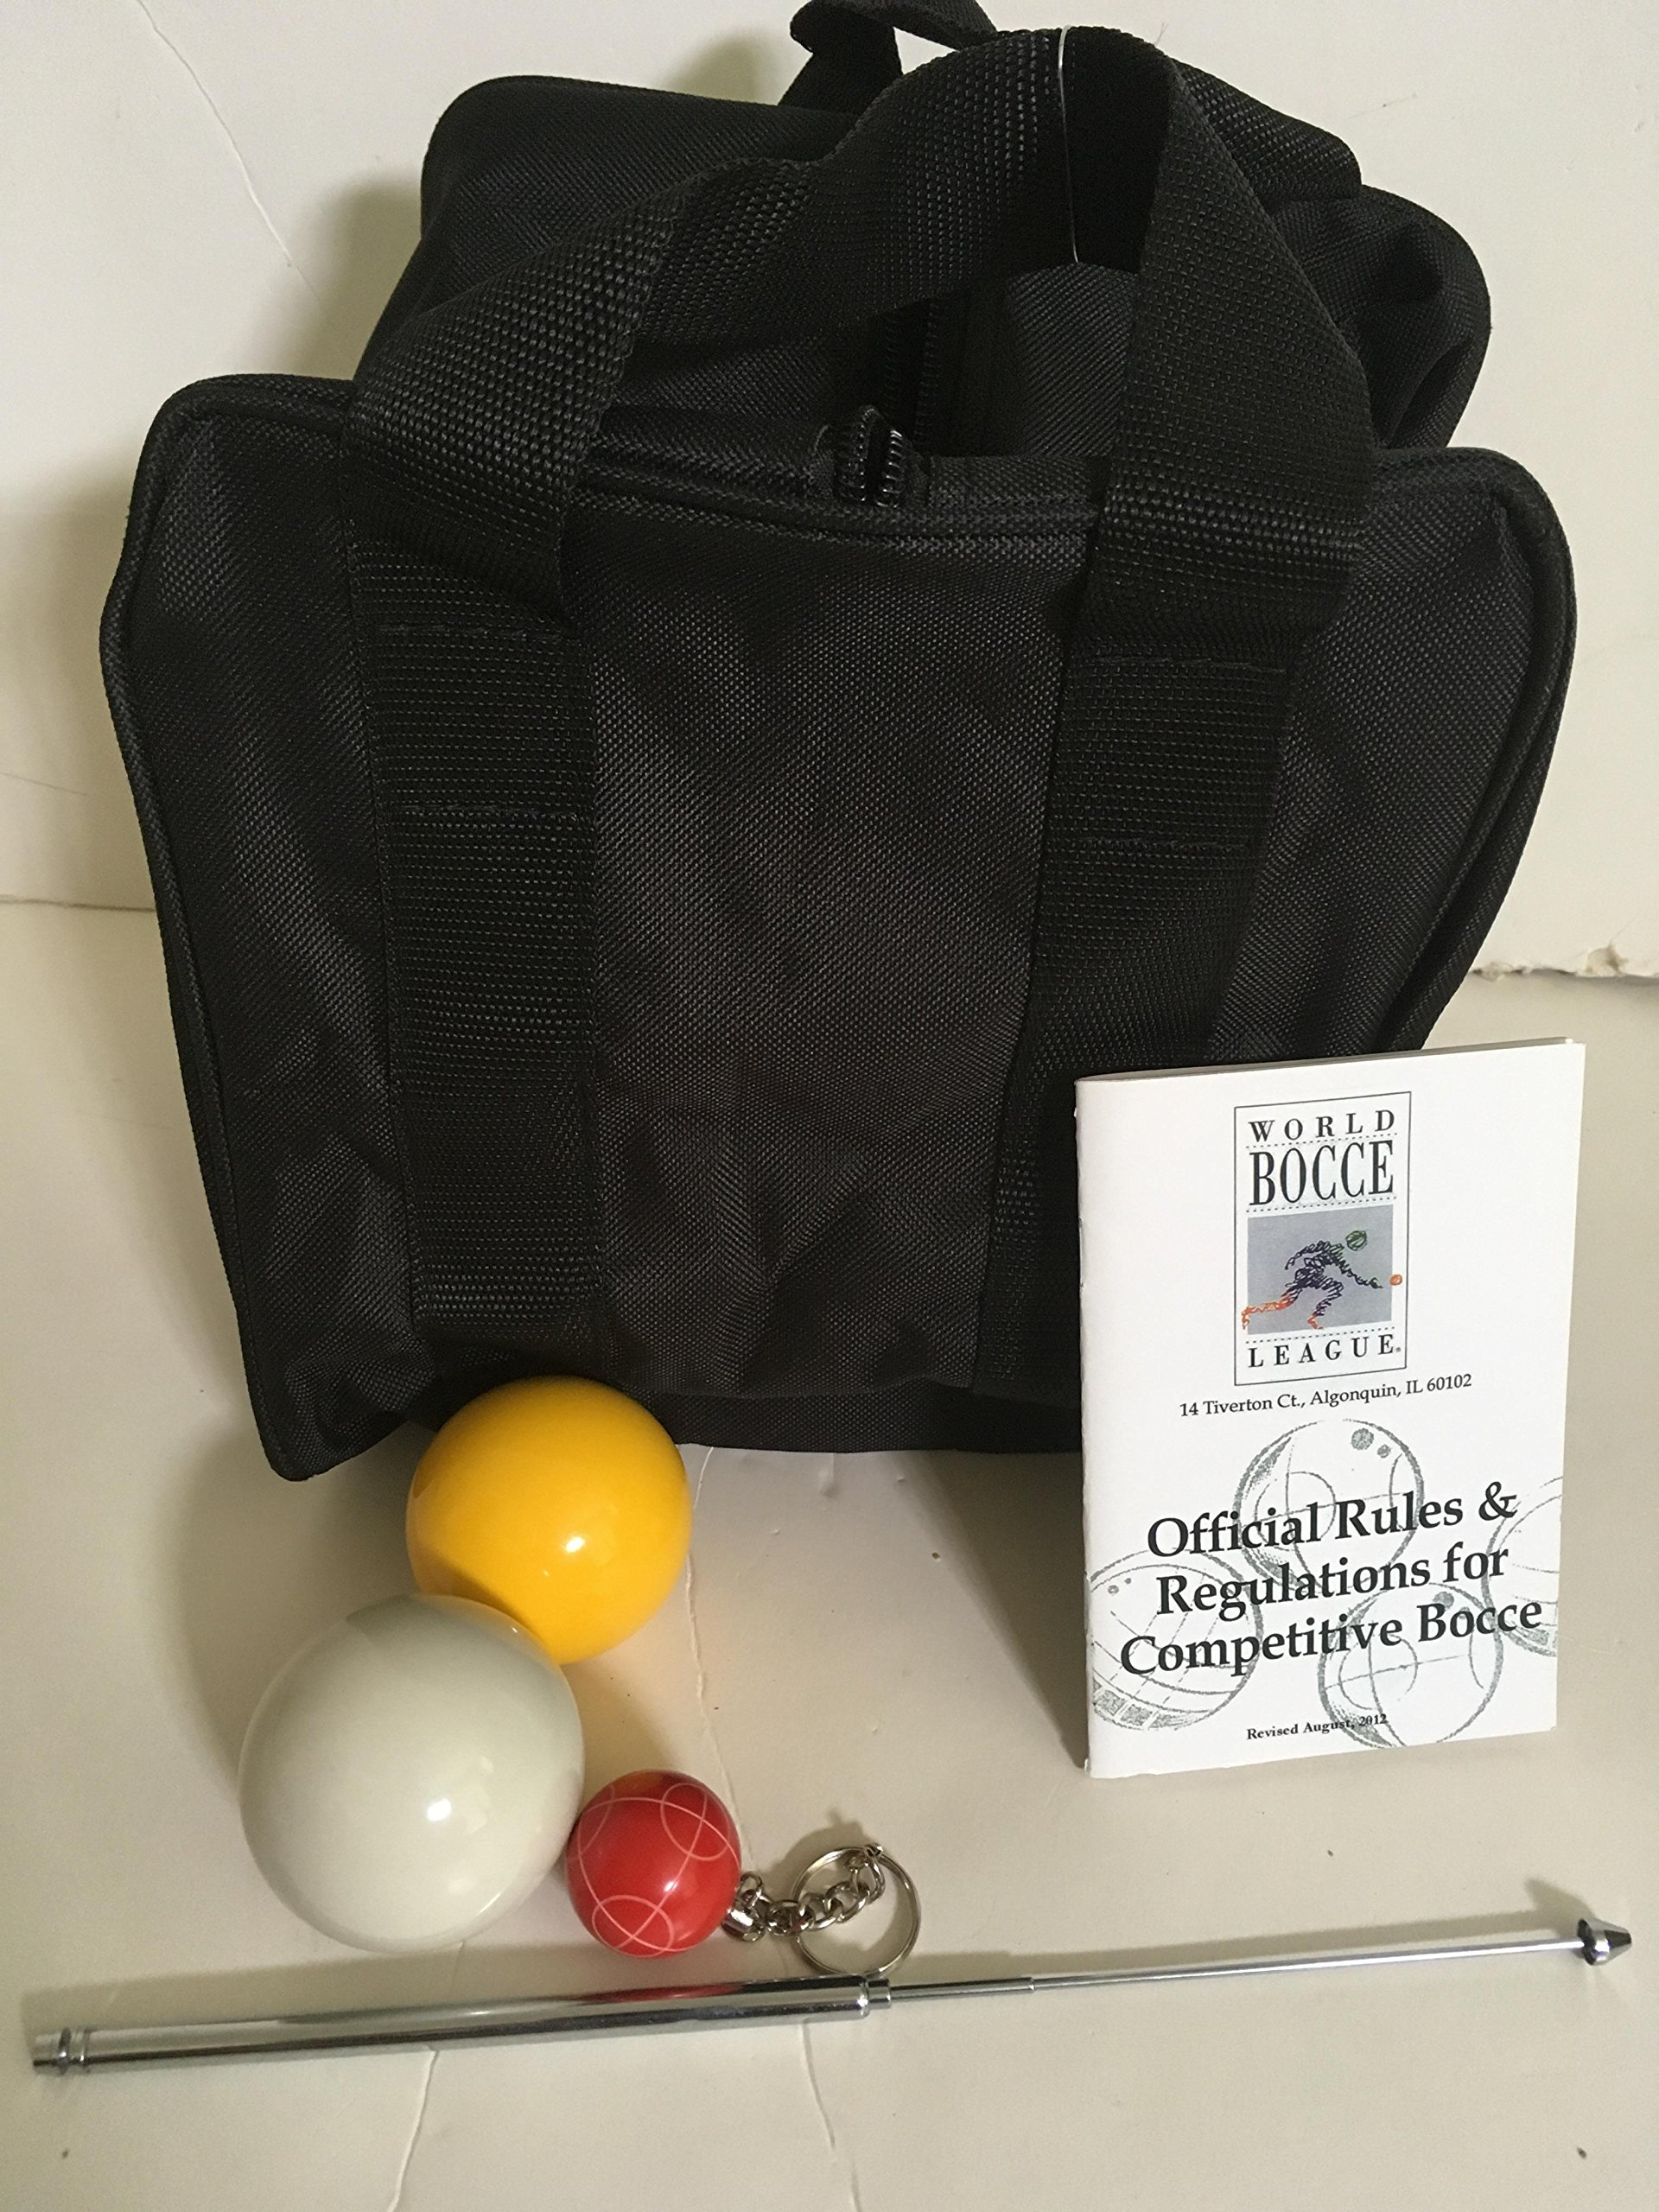 Unique Bocce Ball Accessories Package - Extra Heavy Duty Nylon Bocce Bag (Black with Black Handles), yellow and white pallinas, Extendable Measuring Device, Rule Book and Keychain